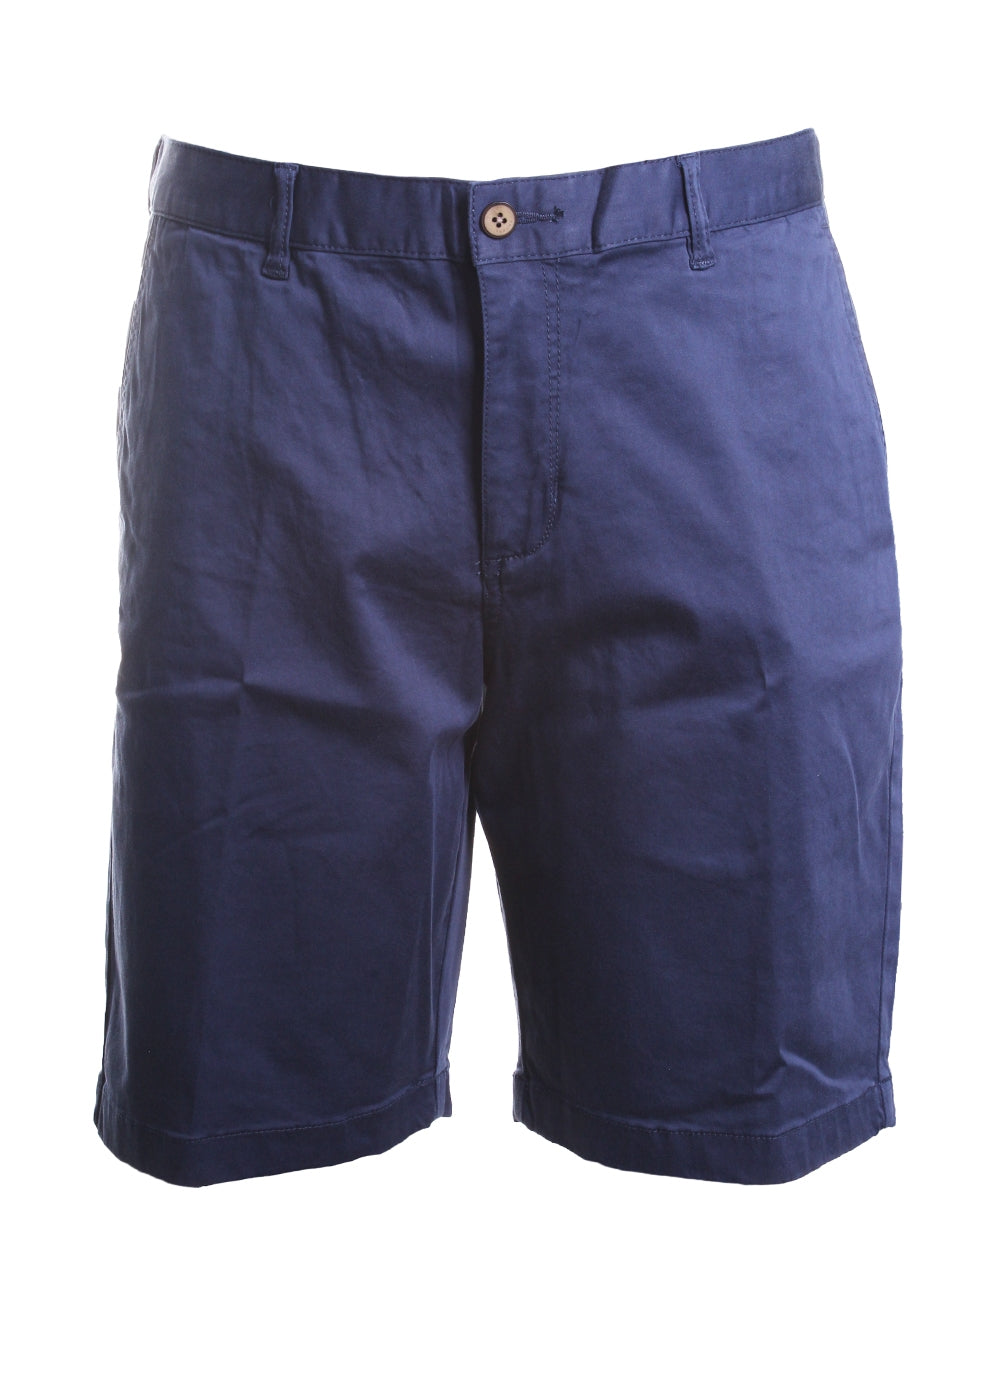 Boracay Cotton Shorts